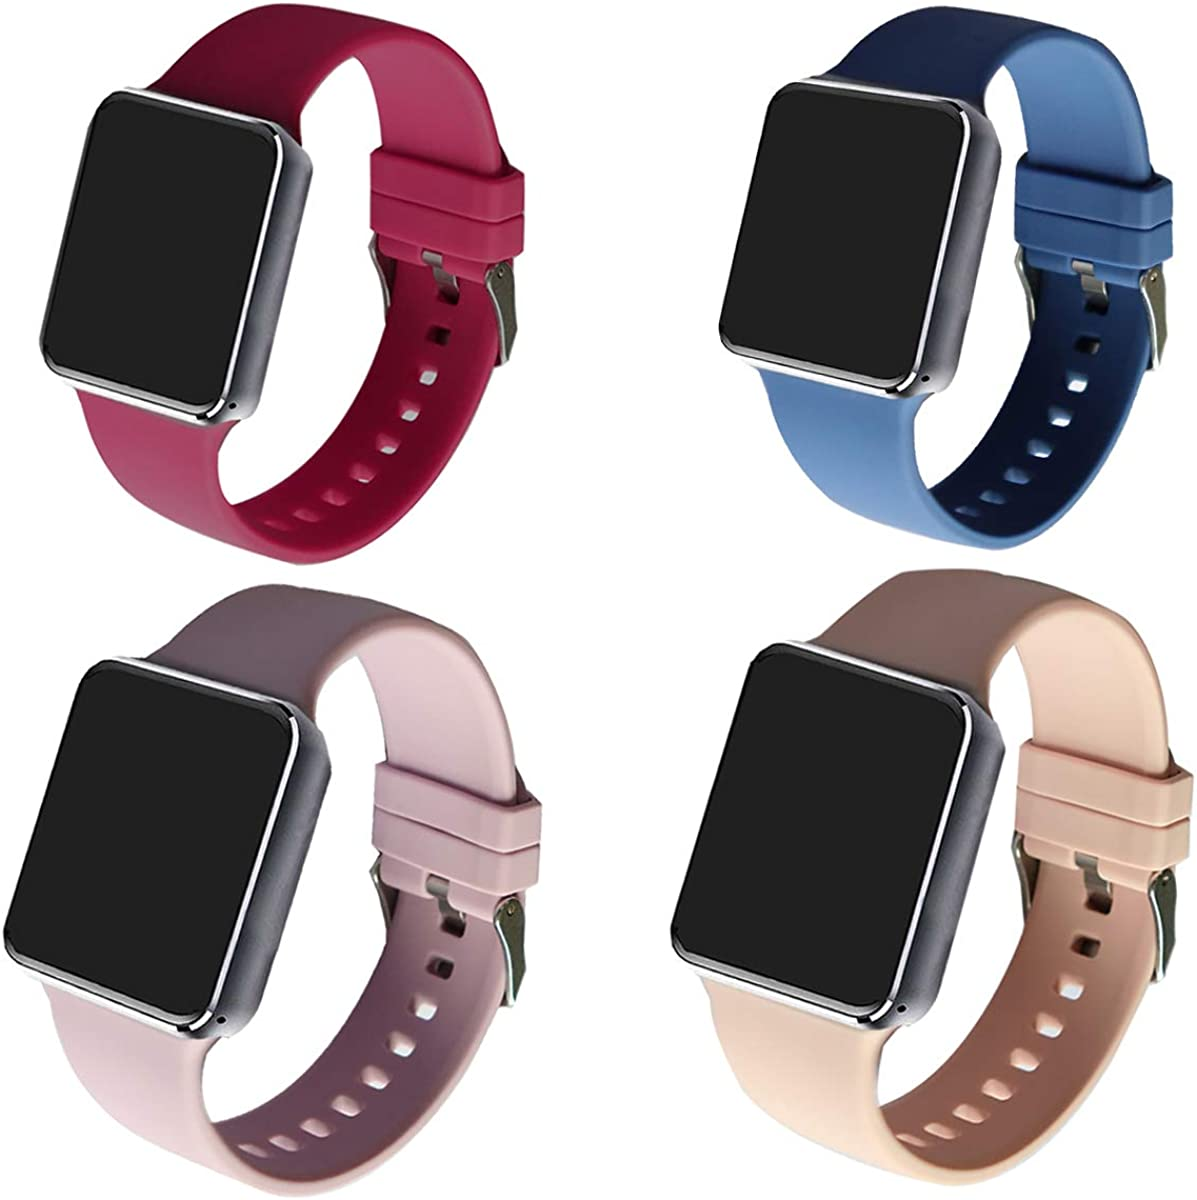 KZE VZEO Silicone Bands Compatible with Apple Watch 38mm/40mm/42mm/44mm ,Soft Sport Replacement Band for iWatch Series SE/6/5/4/3/2/1